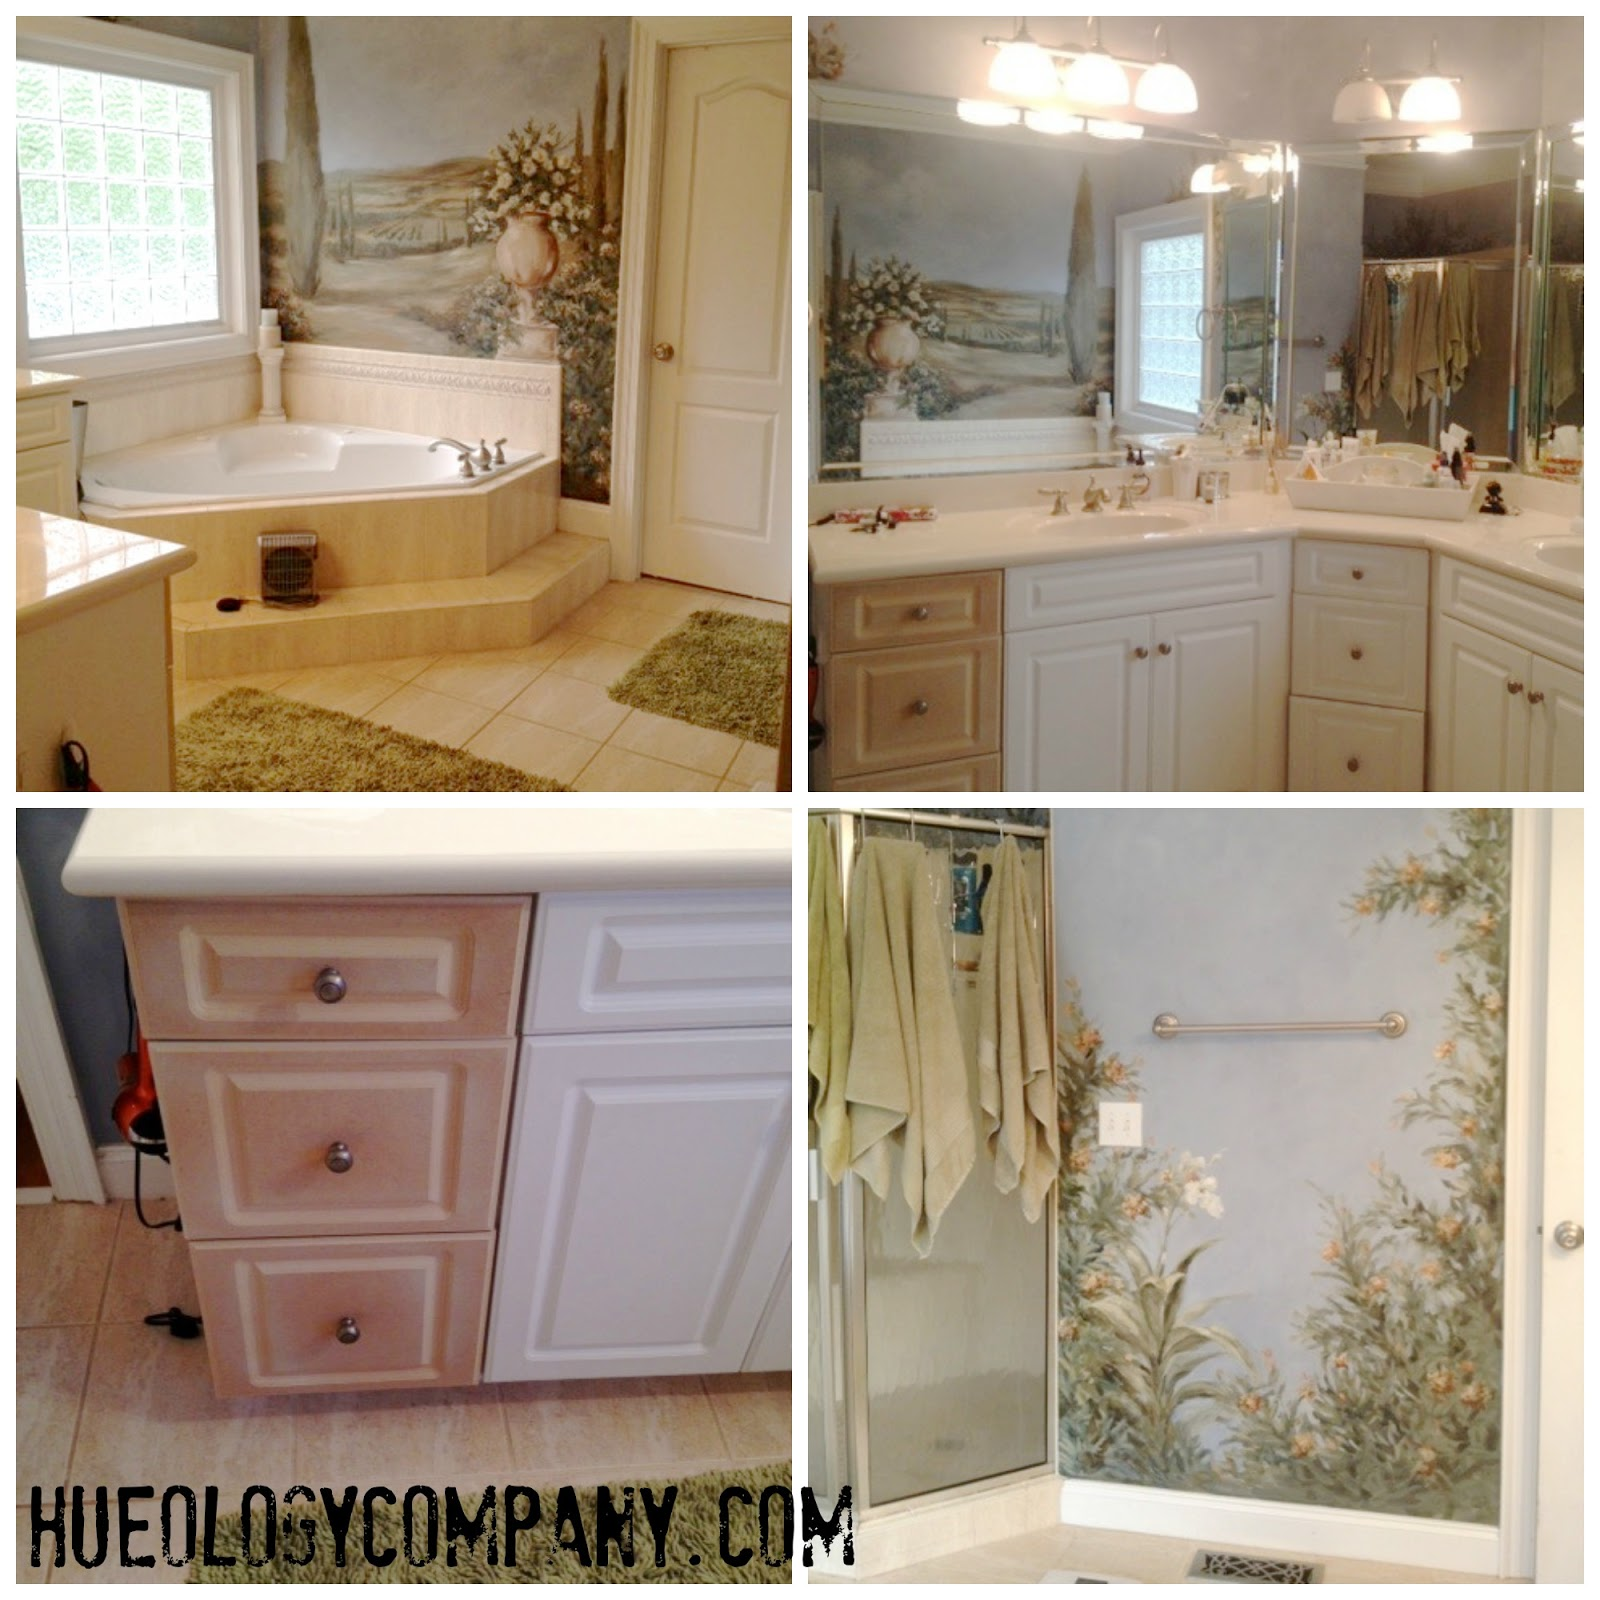 How to paint bathroom cabinets - Painting Bathroom Cabinets Master Bath Makeover